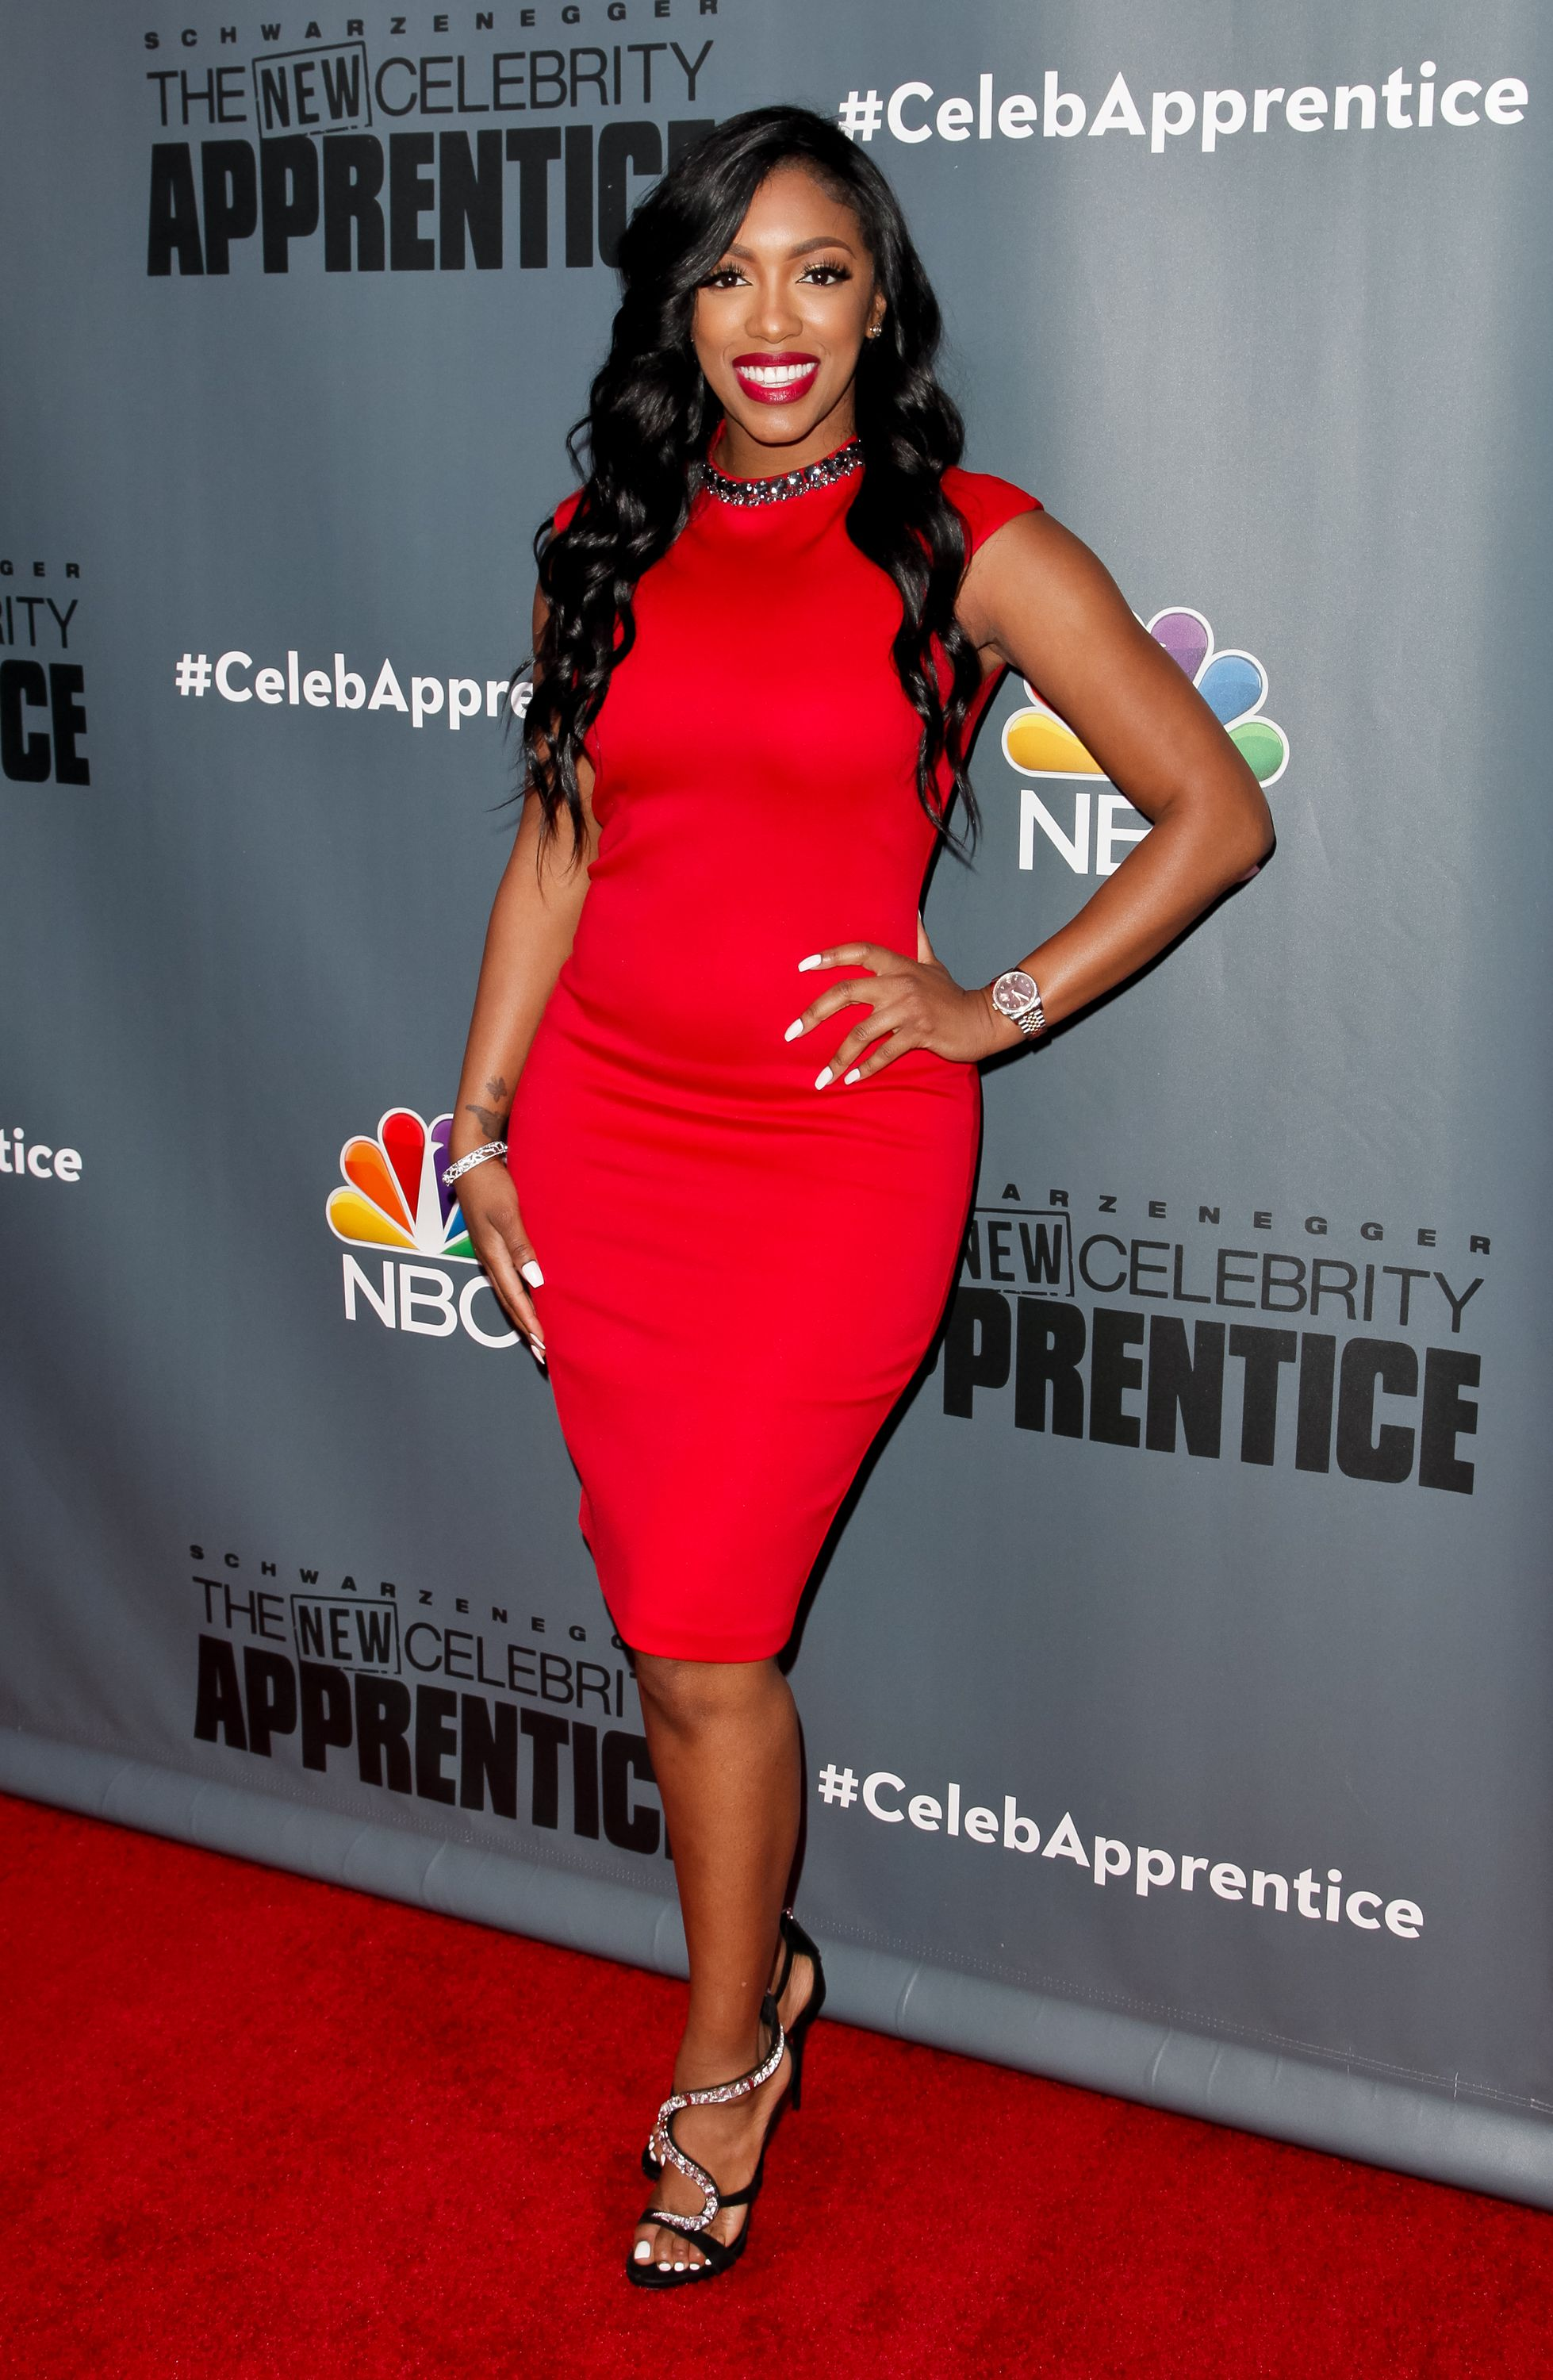 Porsha Williams attends the Q&A for NBC's 'The New Celebrity Apprentice' at NBC Universal Lot on December 9, 2016 in Universal City, California. | Source: Getty Images